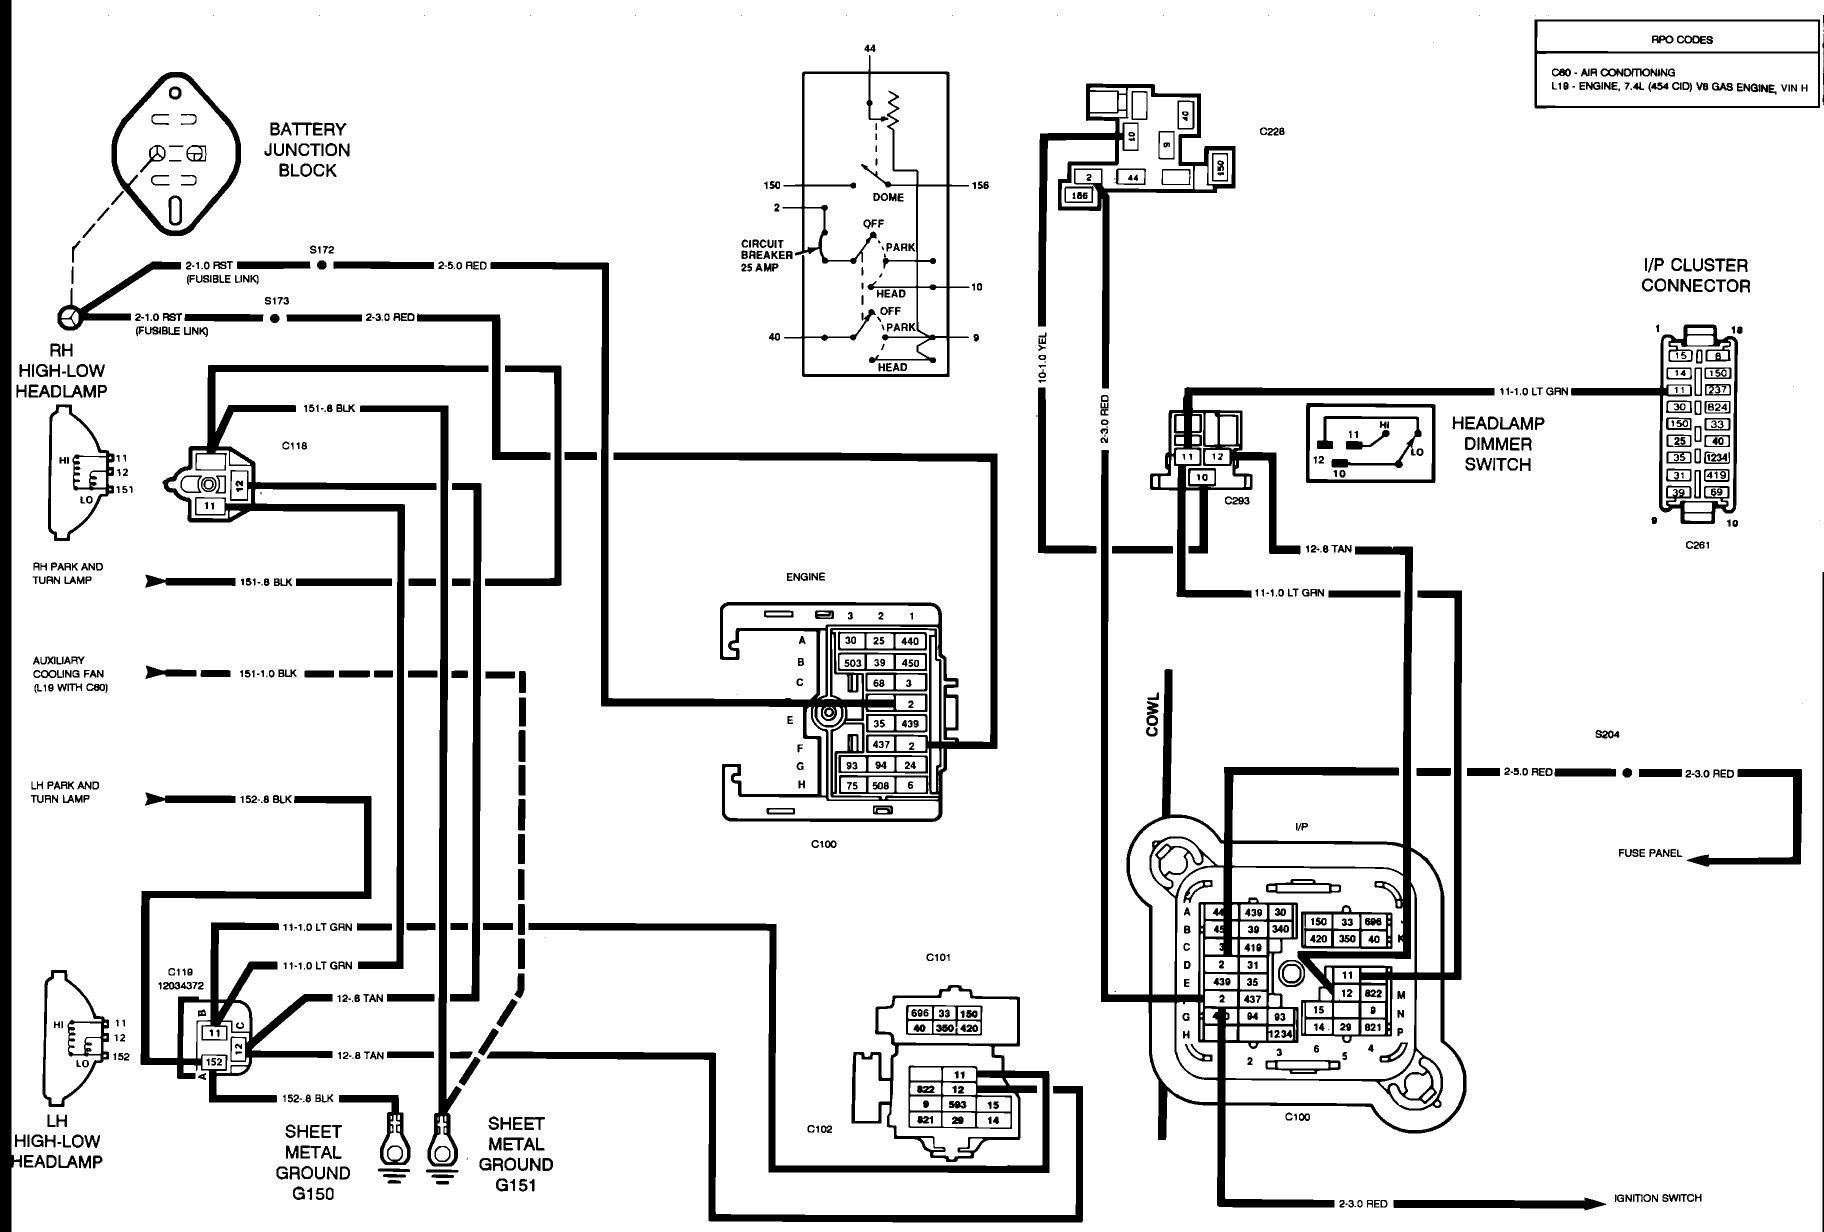 New Vw Golf 4 Central Locking Wiring Diagram #diagram ... Isuzu Central Locking Wiring Diagram on champion bus wiring diagram, husaberg wiring diagram, lincoln wiring diagram, manufacturing wiring diagram, bomag wiring diagram, jeep wiring diagram, cf moto wiring diagram, packard wiring diagram, merkur wiring diagram, winnebago wiring diagram, chevrolet wiring diagram, geo wiring diagram, navistar wiring diagram, austin healey wiring diagram, dmax wiring diagram, grumman llv wiring diagram, naza wiring diagram, case wiring diagram, am general wiring diagram, meyers manx wiring diagram,